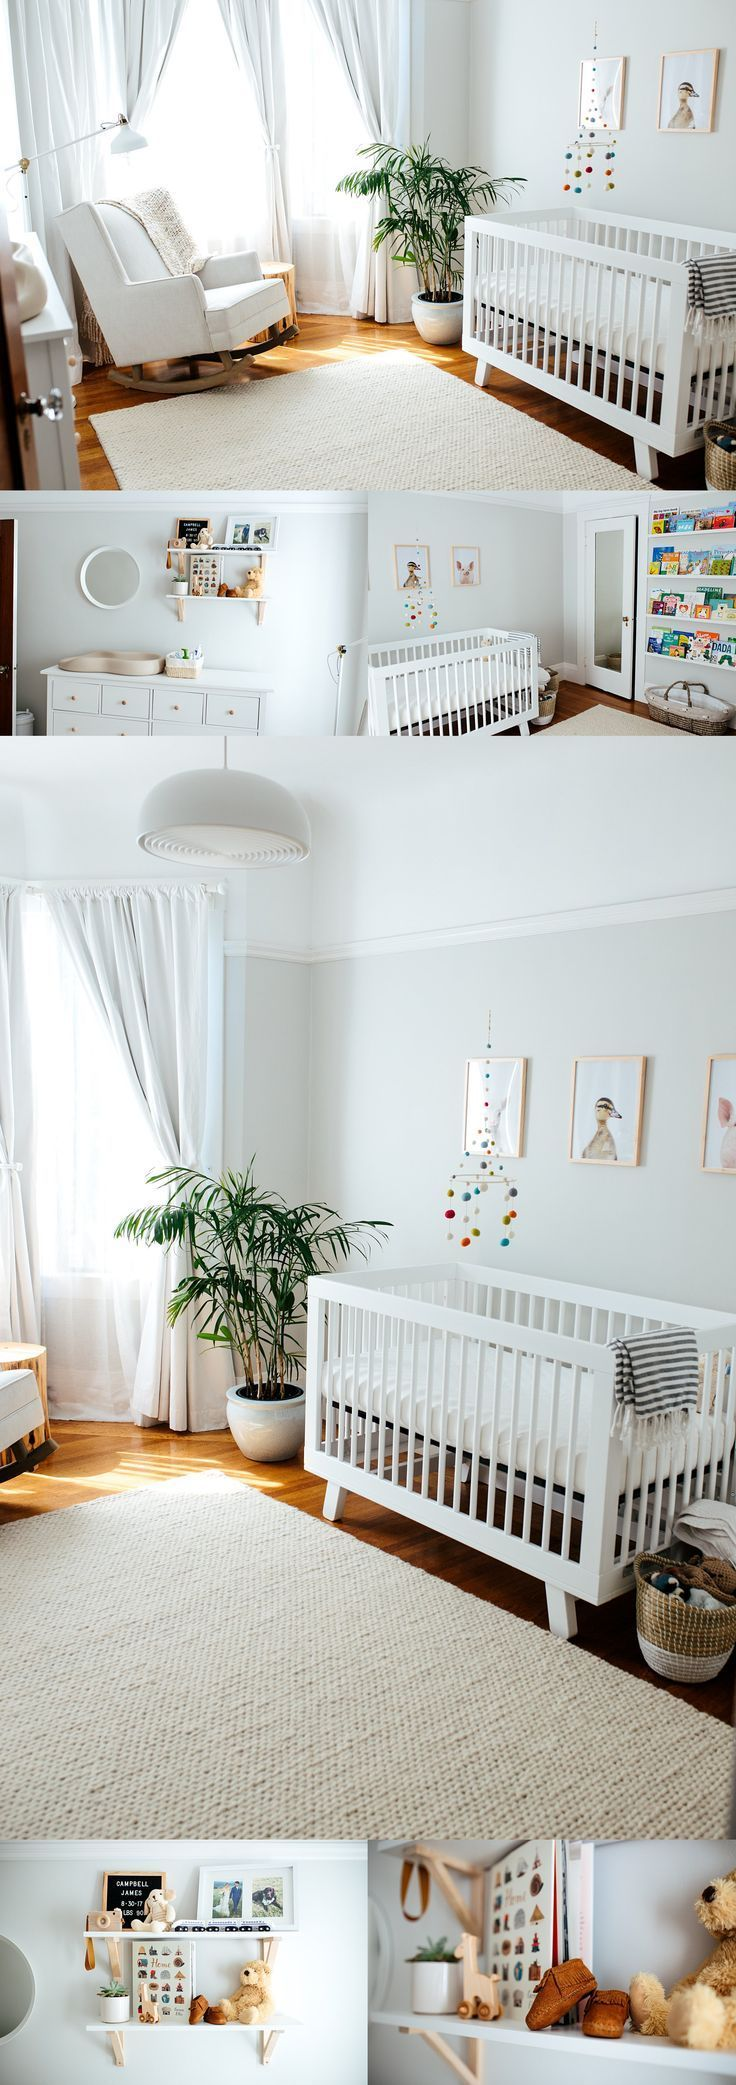 Kids Room Decorating Ideas to Inspire You